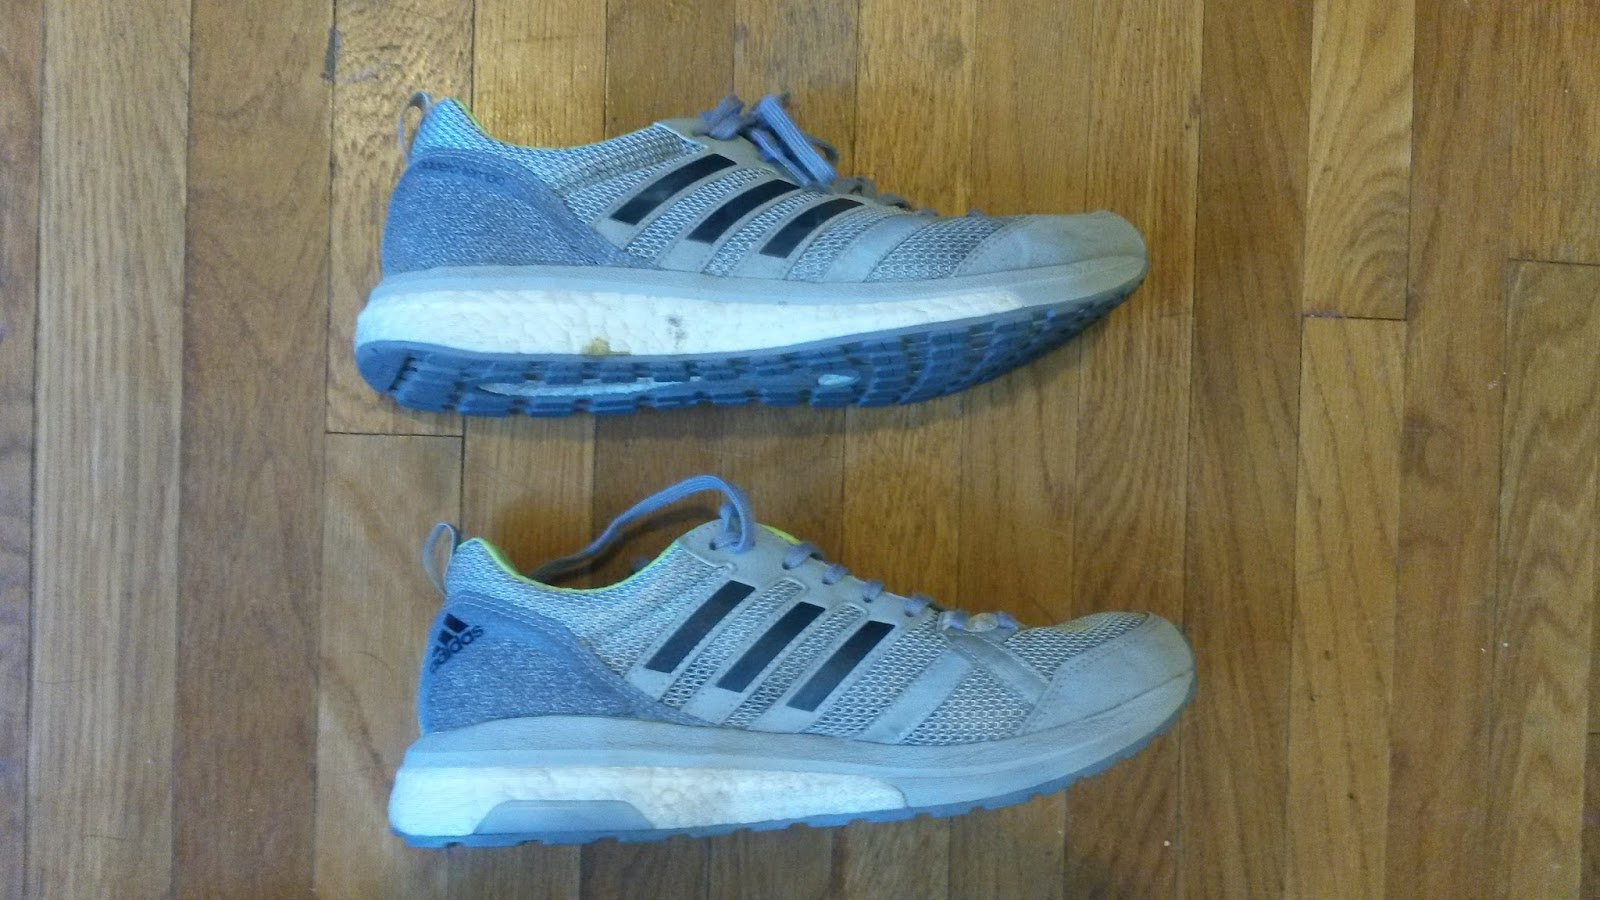 newest 0fd8e fc3d6 Then my curiosity got the better of me with version 9. An Adidas Rep (who  wished to remain unnamed) was nice enough to seed me a pair to see my  thoughts.